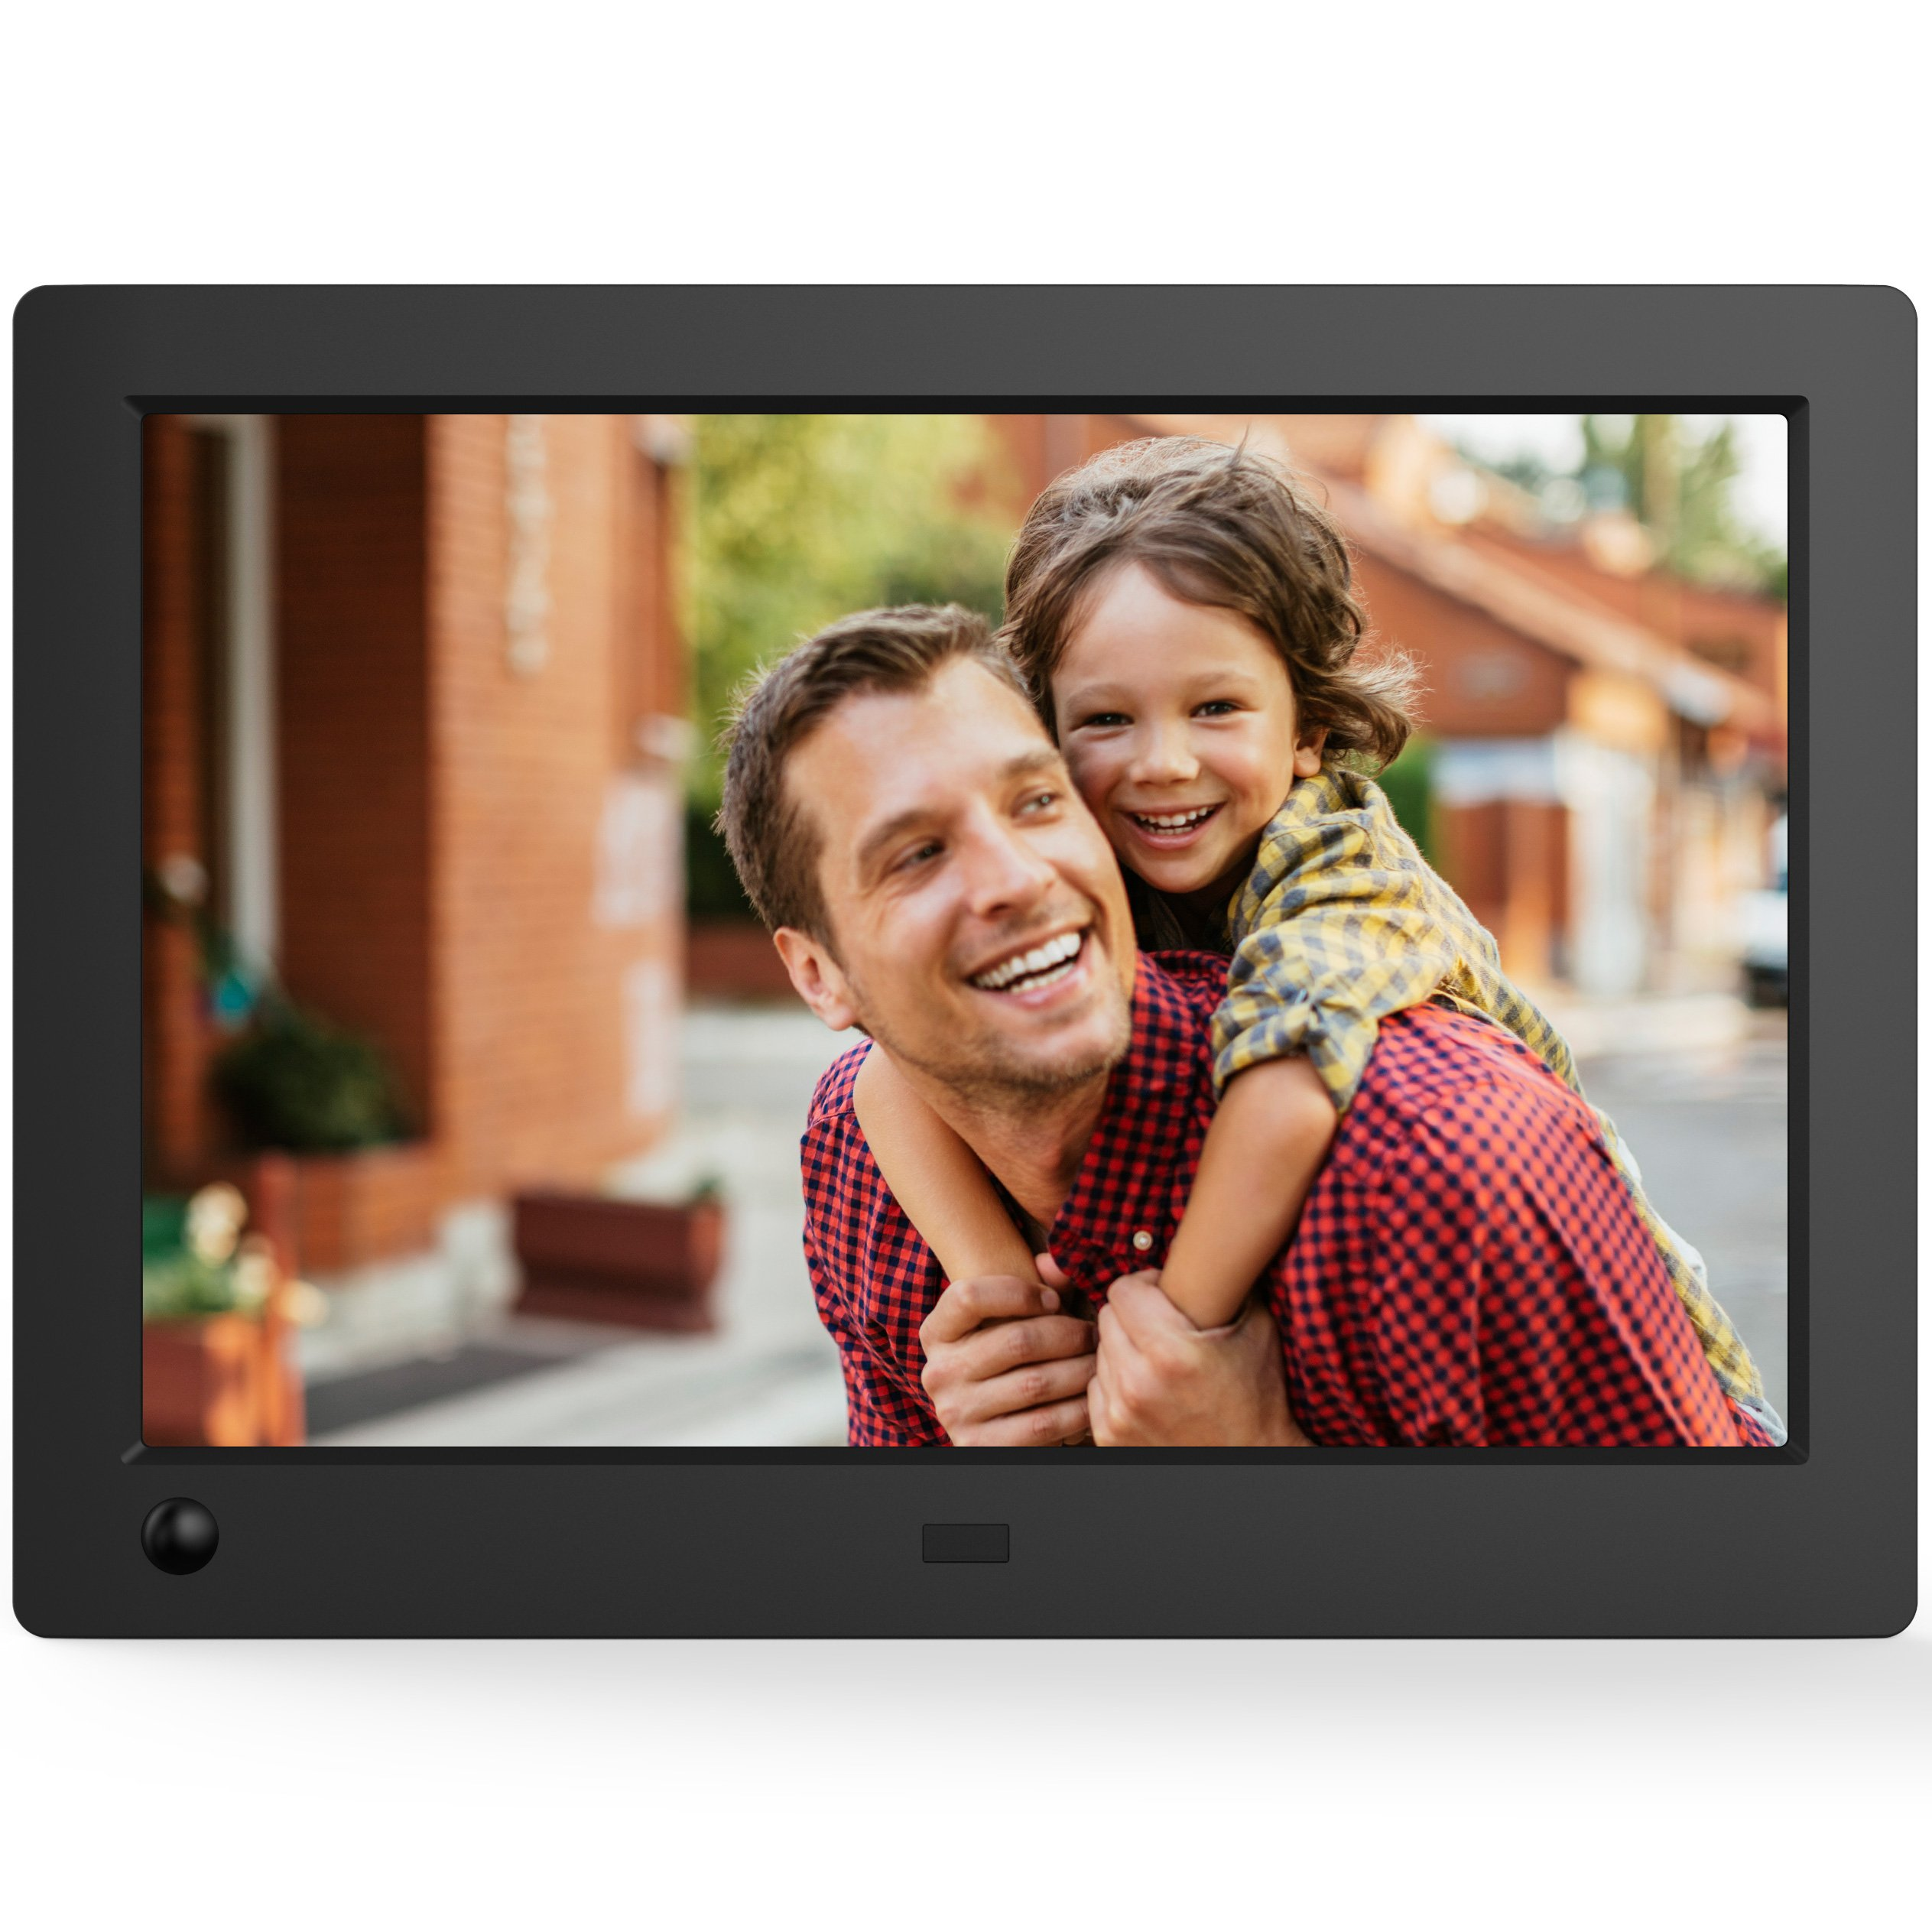 NIX Advance 8 Inch Widescreen Hi-Res Digital Photo & HD Video Frame with Hu-Motion Sensor (X08G)